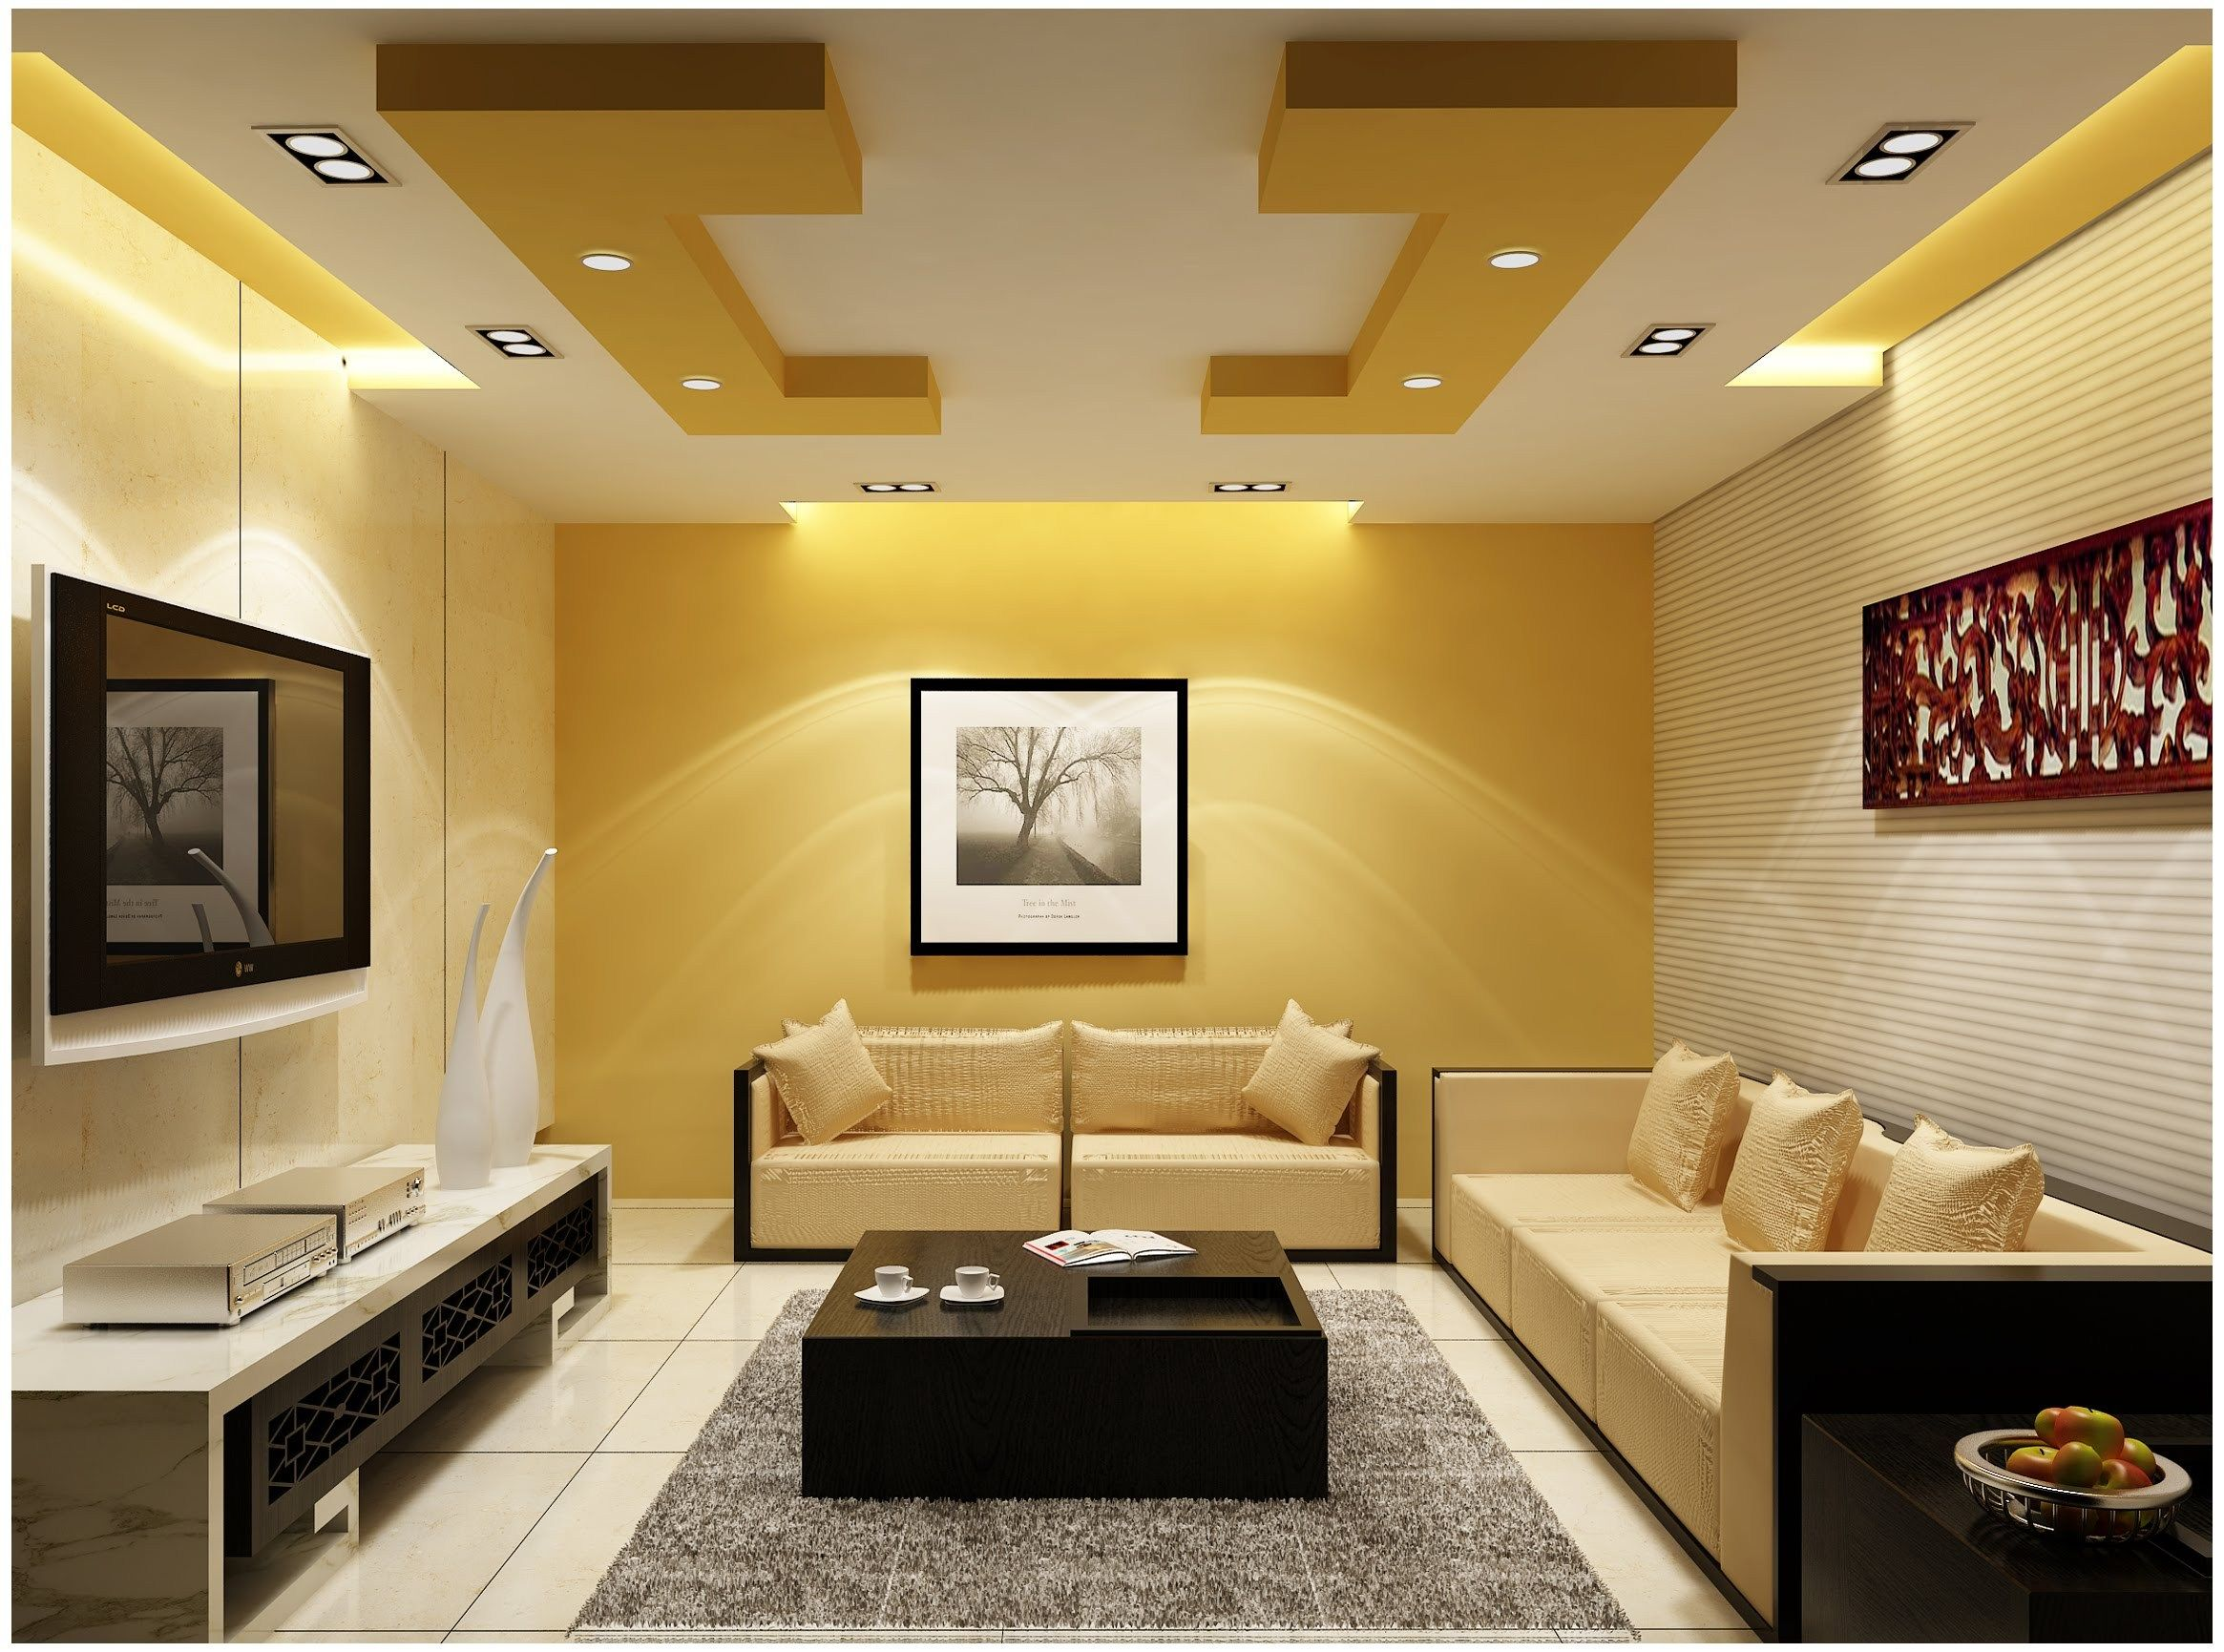 Pin By Irfan Kazi On False Ceiling Ideas False Ceiling Design Ceiling Design Ceiling